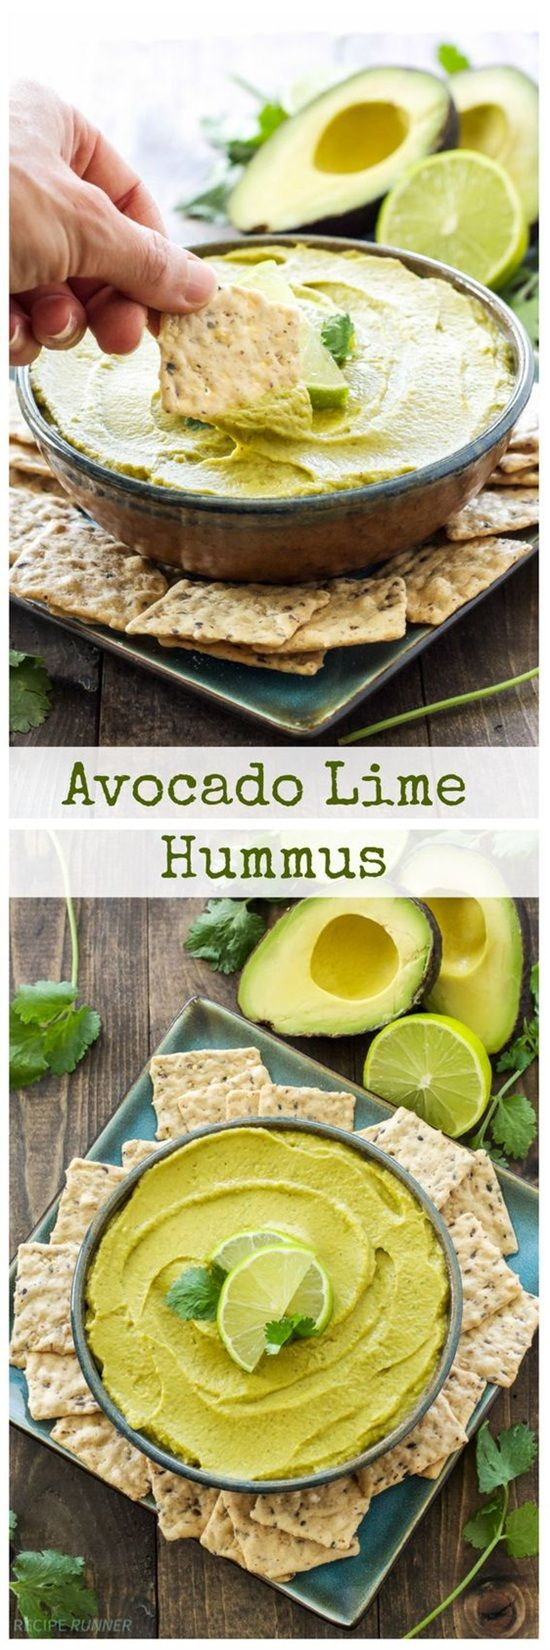 Hummus is one of those things that's just better homemade. Whatever the brand you buy, you'll always be disappointed. But the good thing is that hummus is so easy to make at home. Here's 20 delicious hummus recipes to try at home.